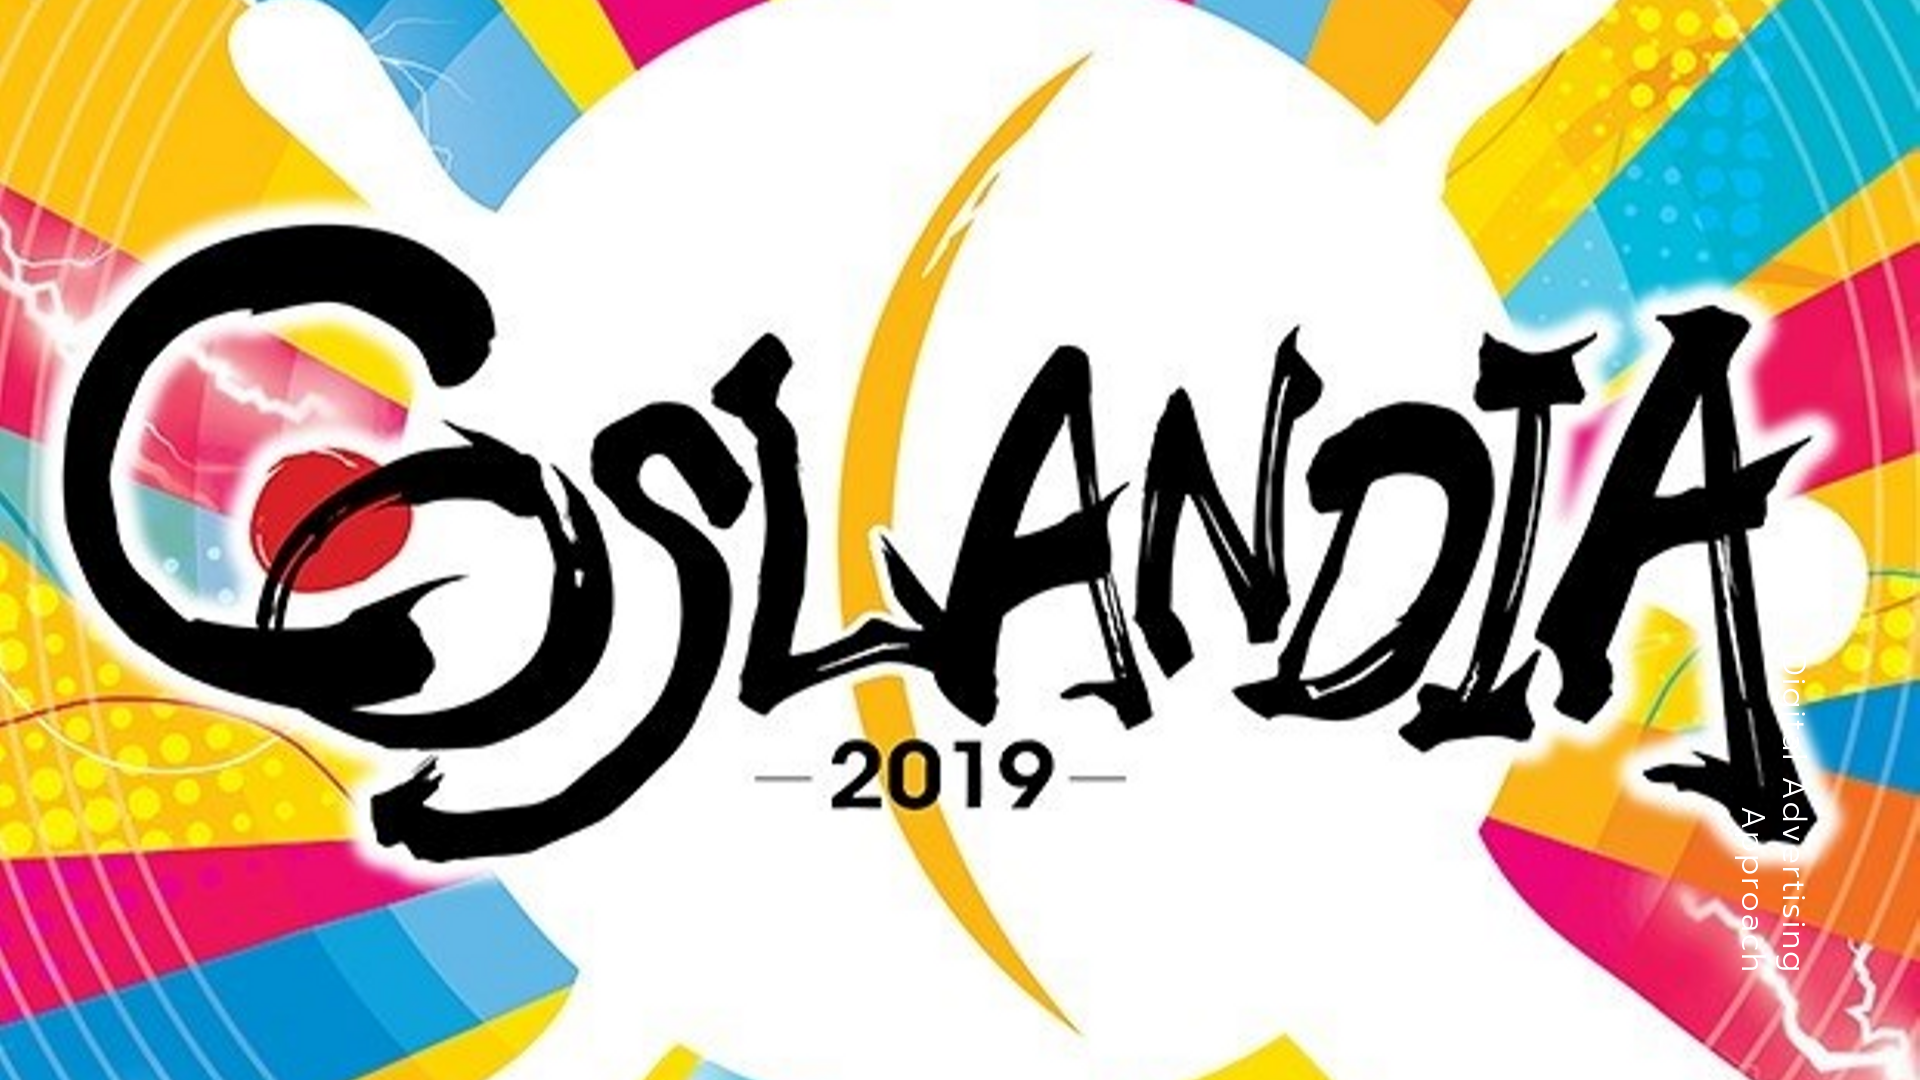 Coslandia 2019 Schedule of Activities released